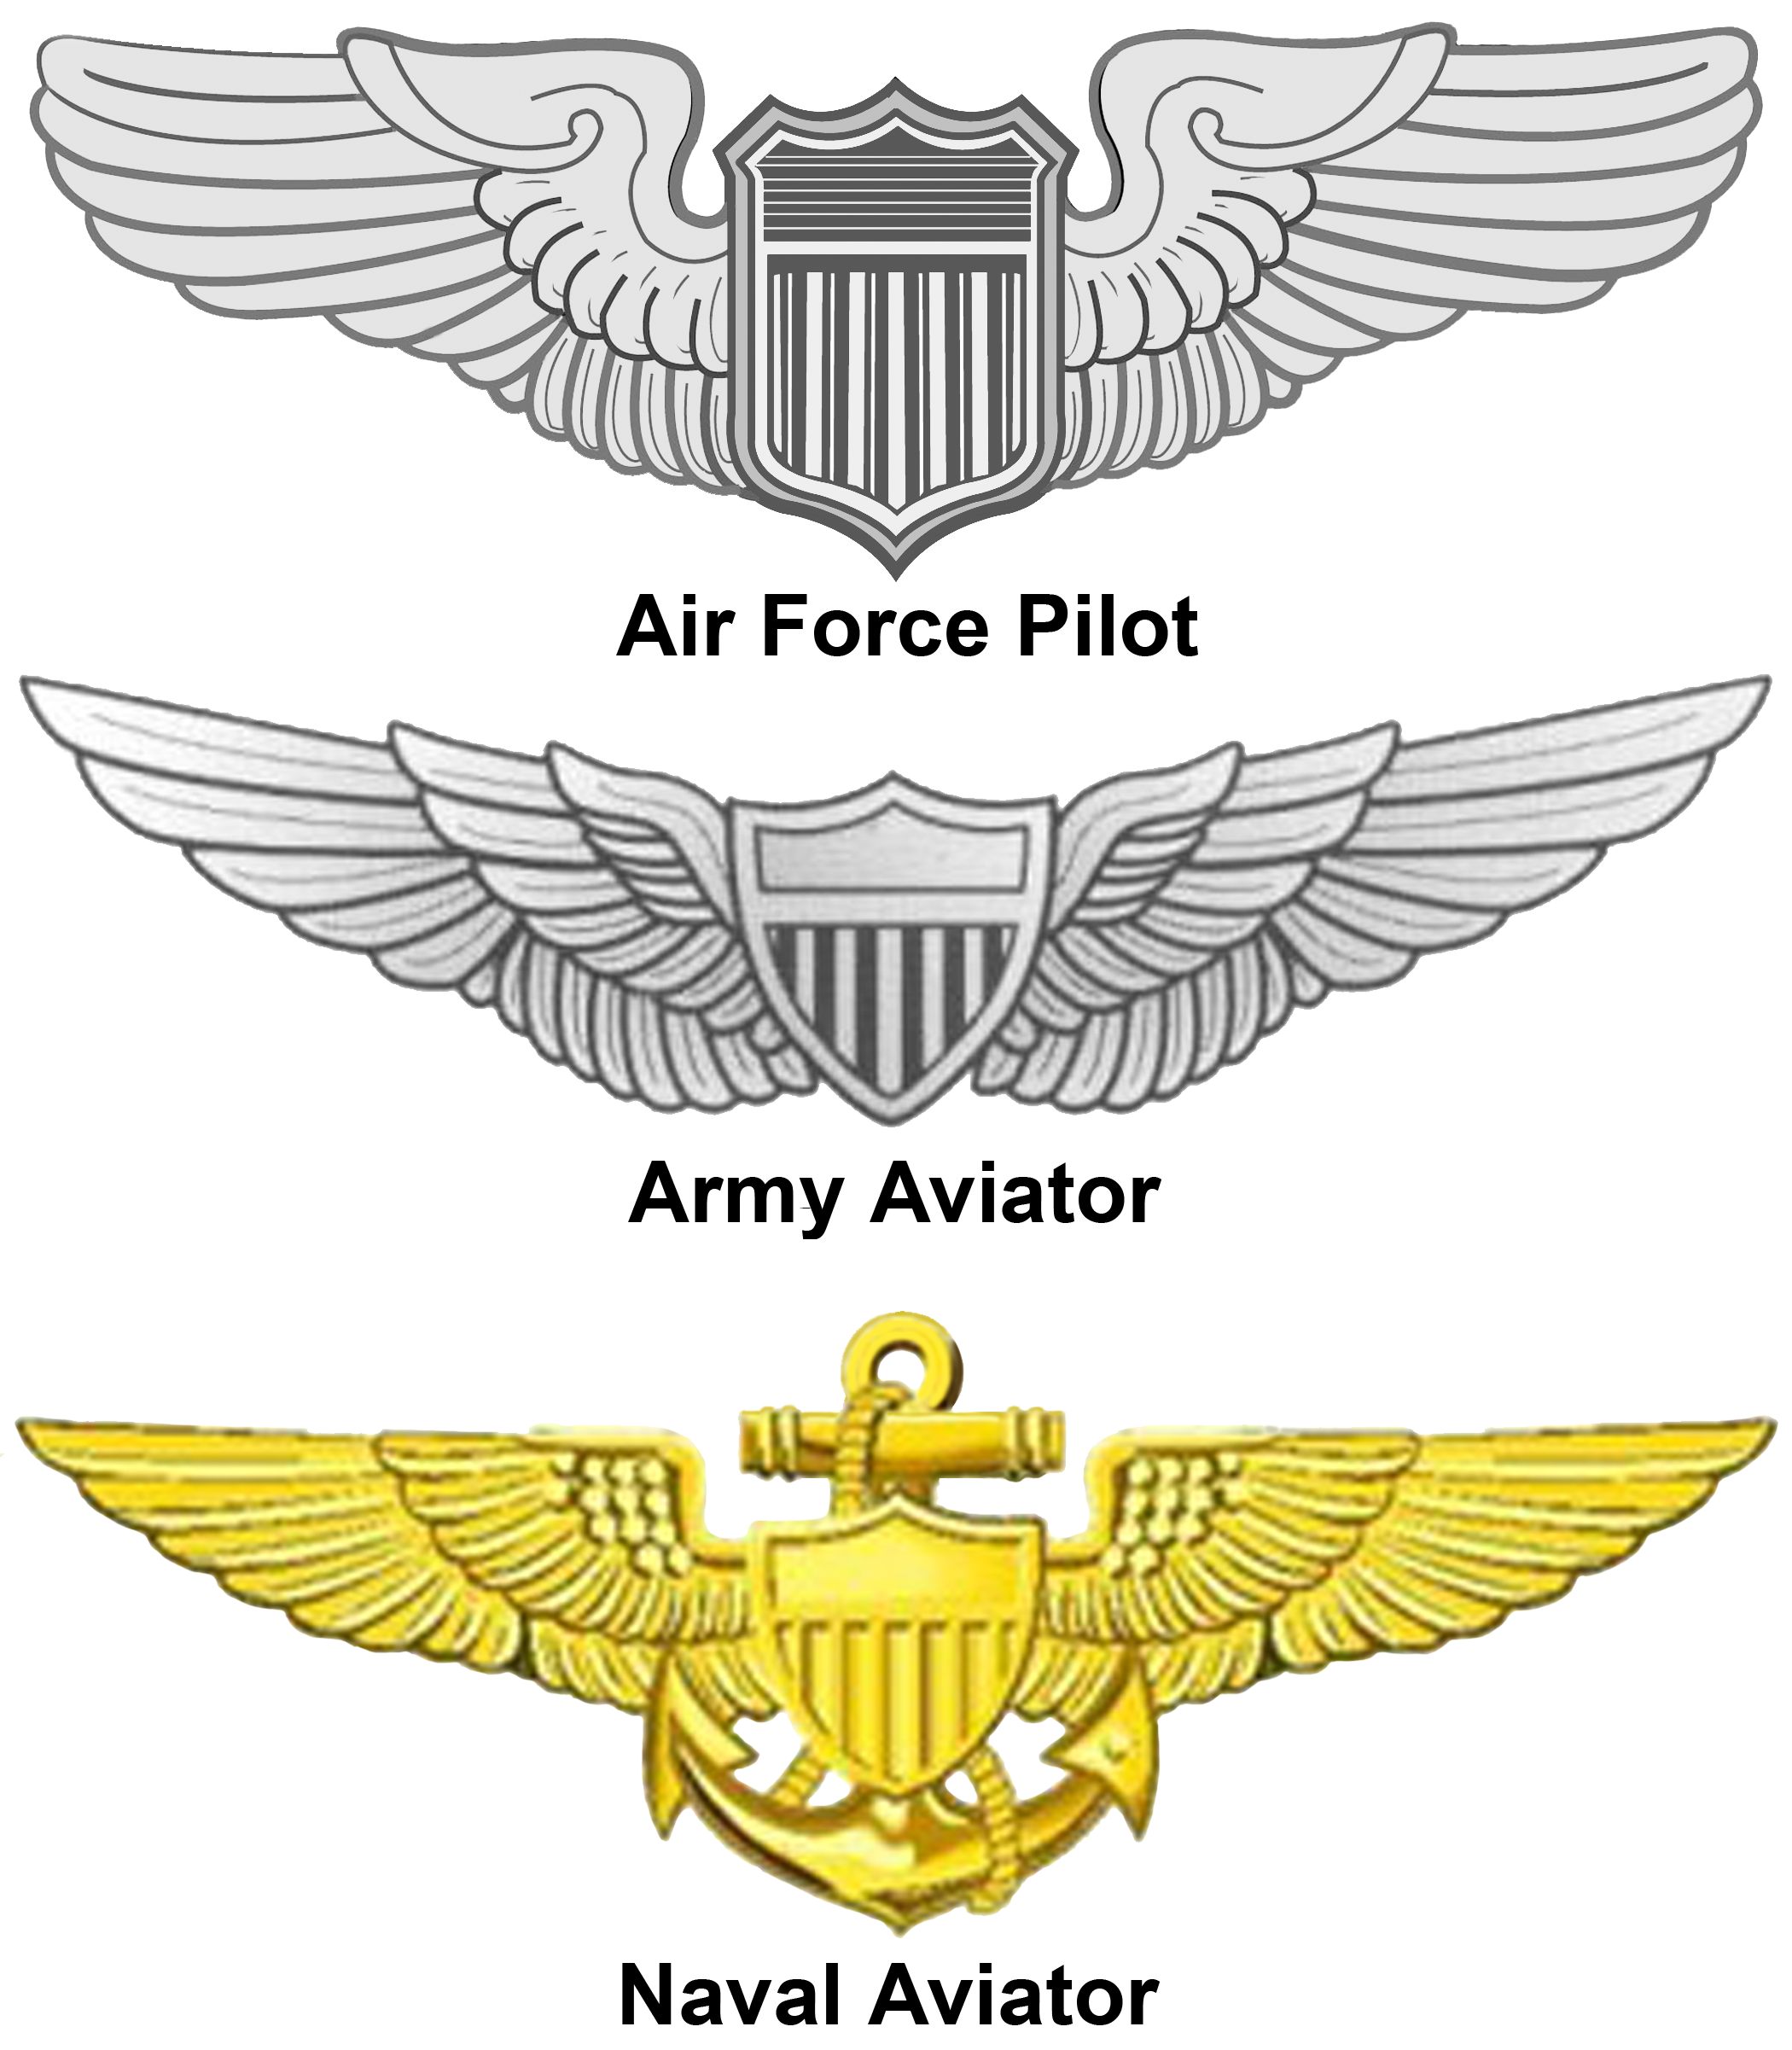 Military Insignia Stock Images RoyaltyFree Images